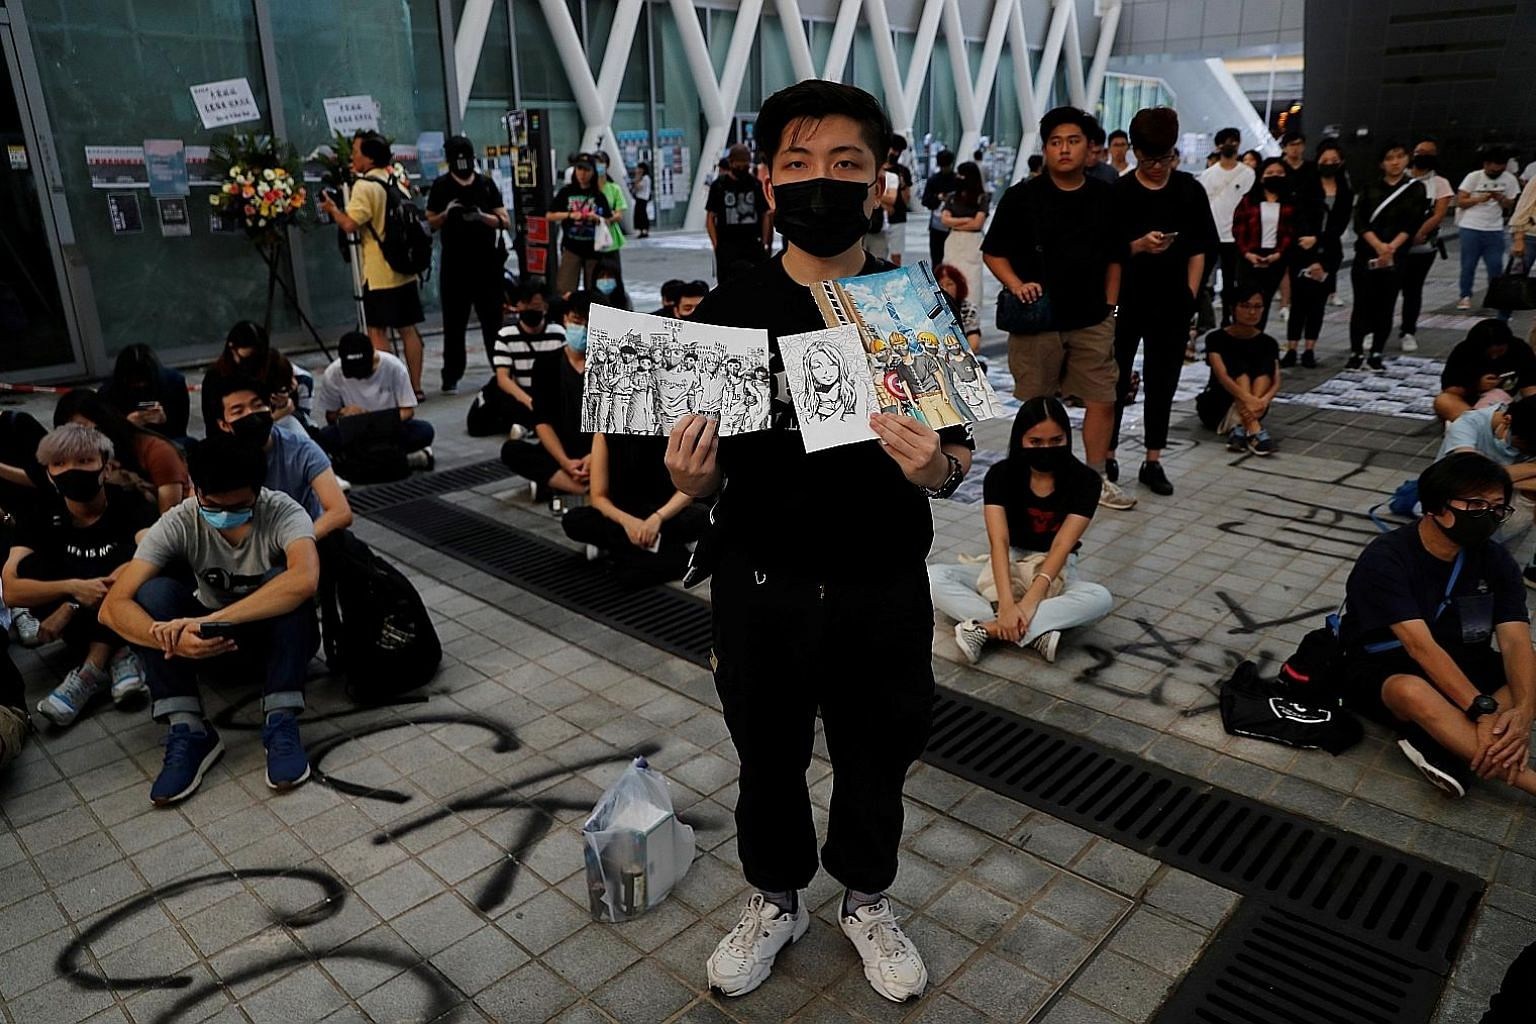 An anti-government protester making a stand with drawings during a Hong Kong demonstration yesterday. PHOTO: REUTERS